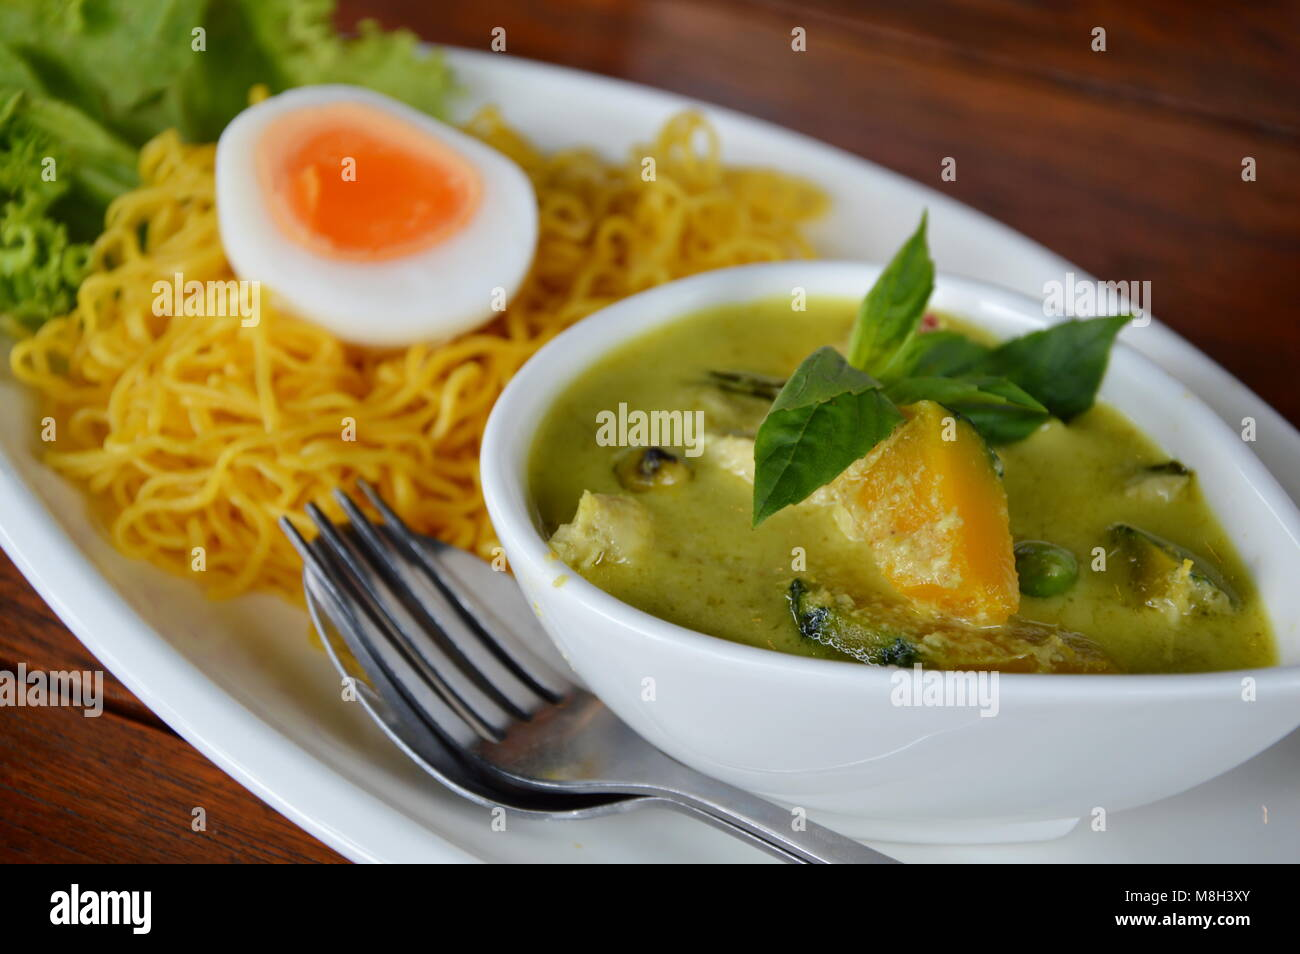 chicken curry and egg noodle - Stock Image